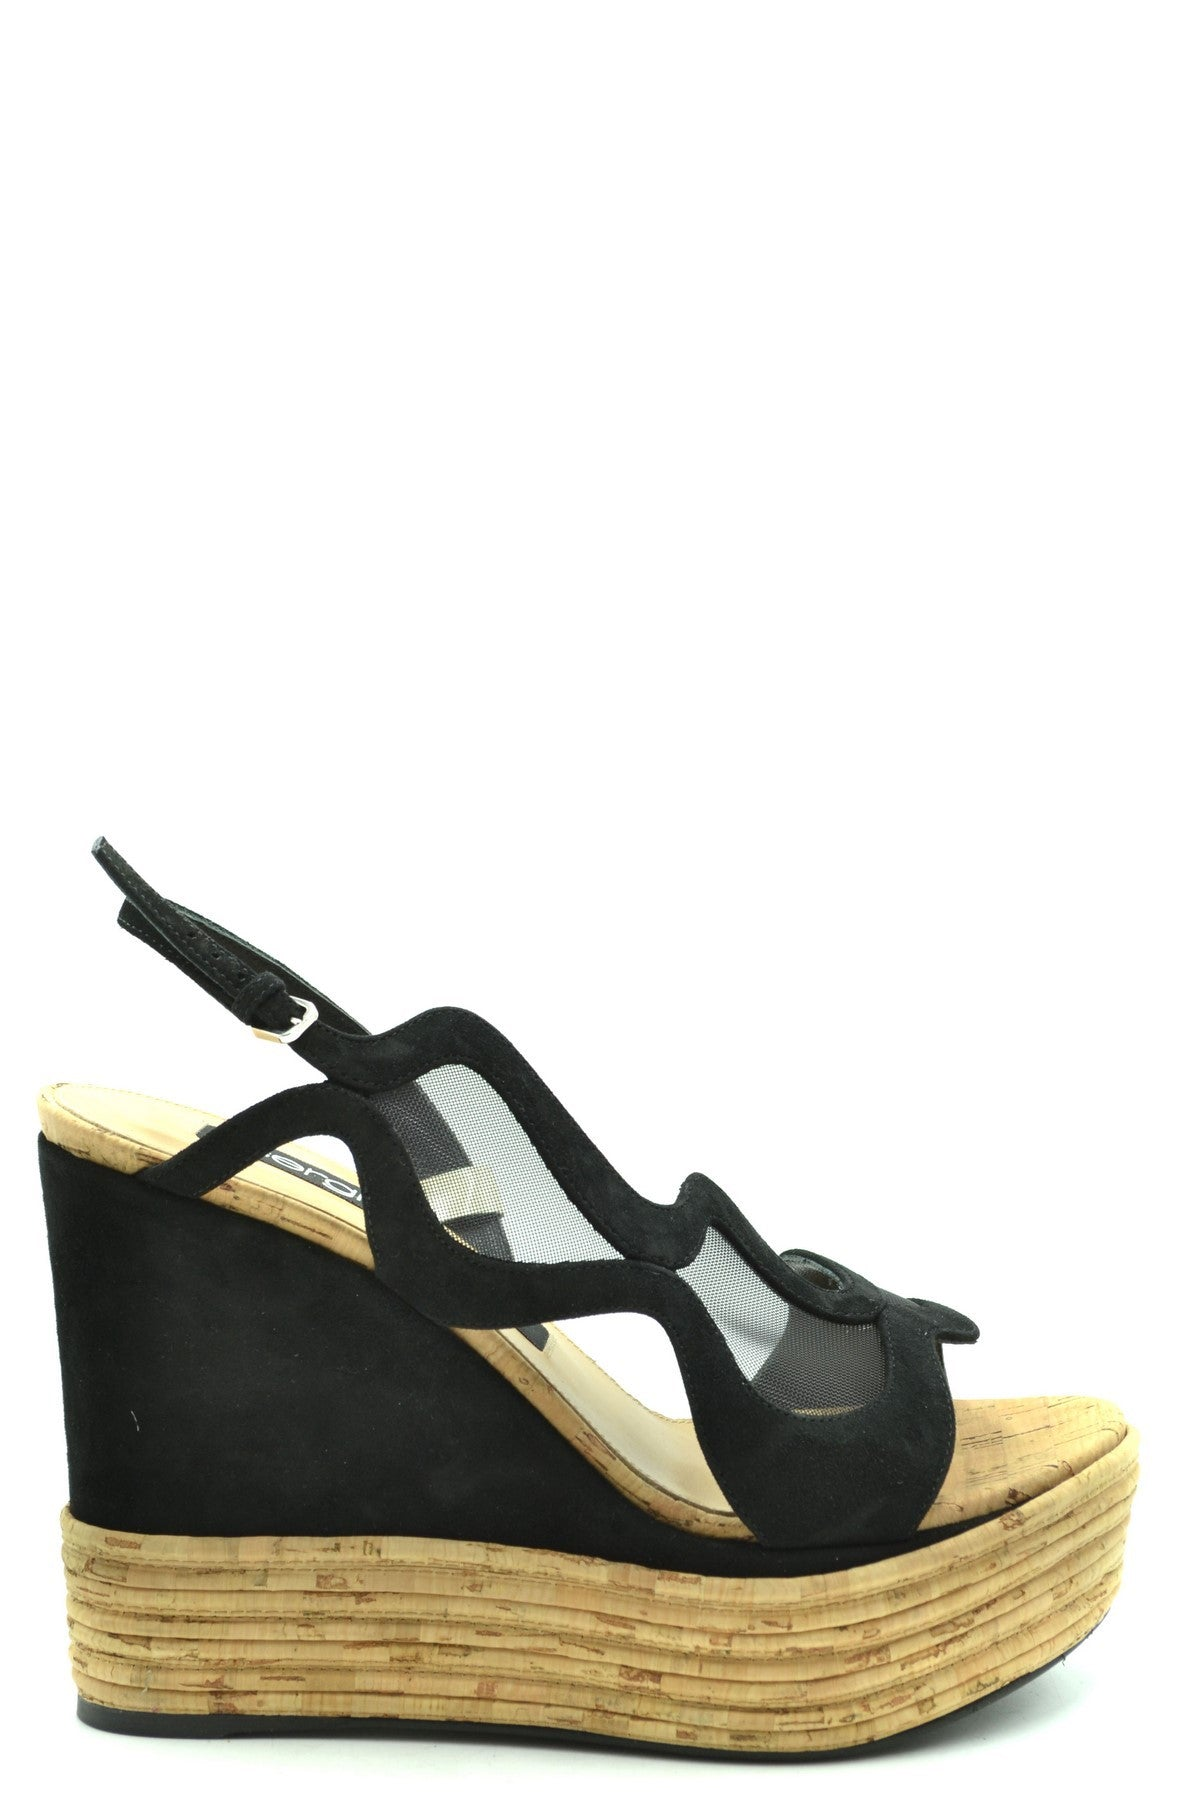 Shoes Sergio Rossi-Women's Fashion - Women's Shoes - Women's Sandals-38-Product Details Terms: New With LabelMain Color: BlackType Of Accessory: ShoesSeason: Spring / SummerMade In: ItalyGender: WomanPlatform'S Height: 4 CmHeel'S Height: 13 CmSize: EuComposition: Suede 100%Year: 2020Manufacturer Part Number: A89160-Keyomi-Sook